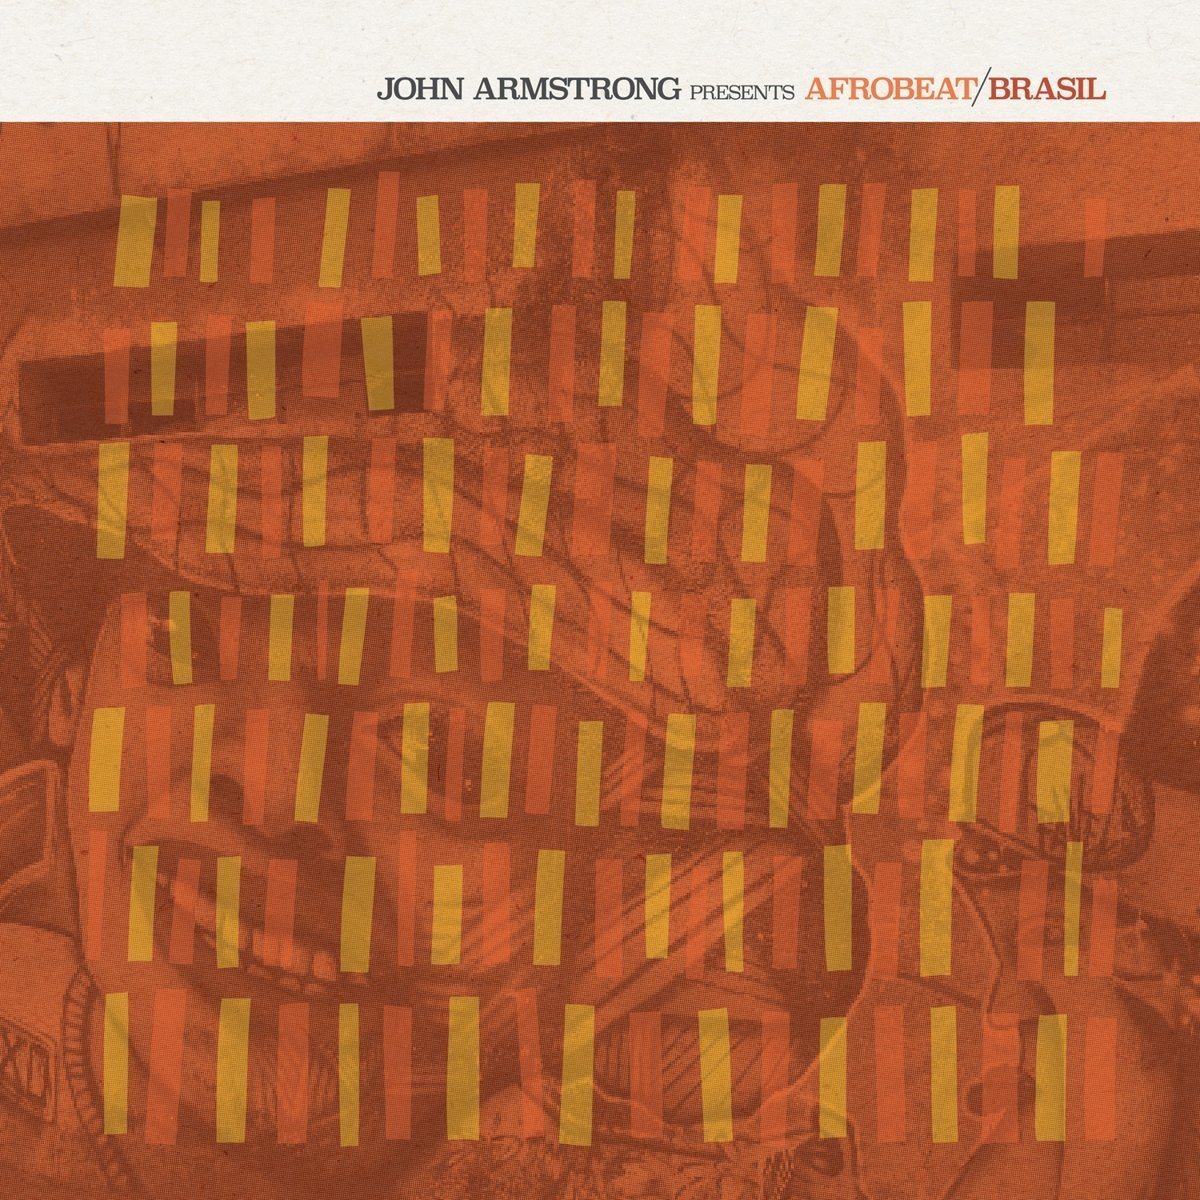 world Cat 06 17 j armstrong afrobeat brasil